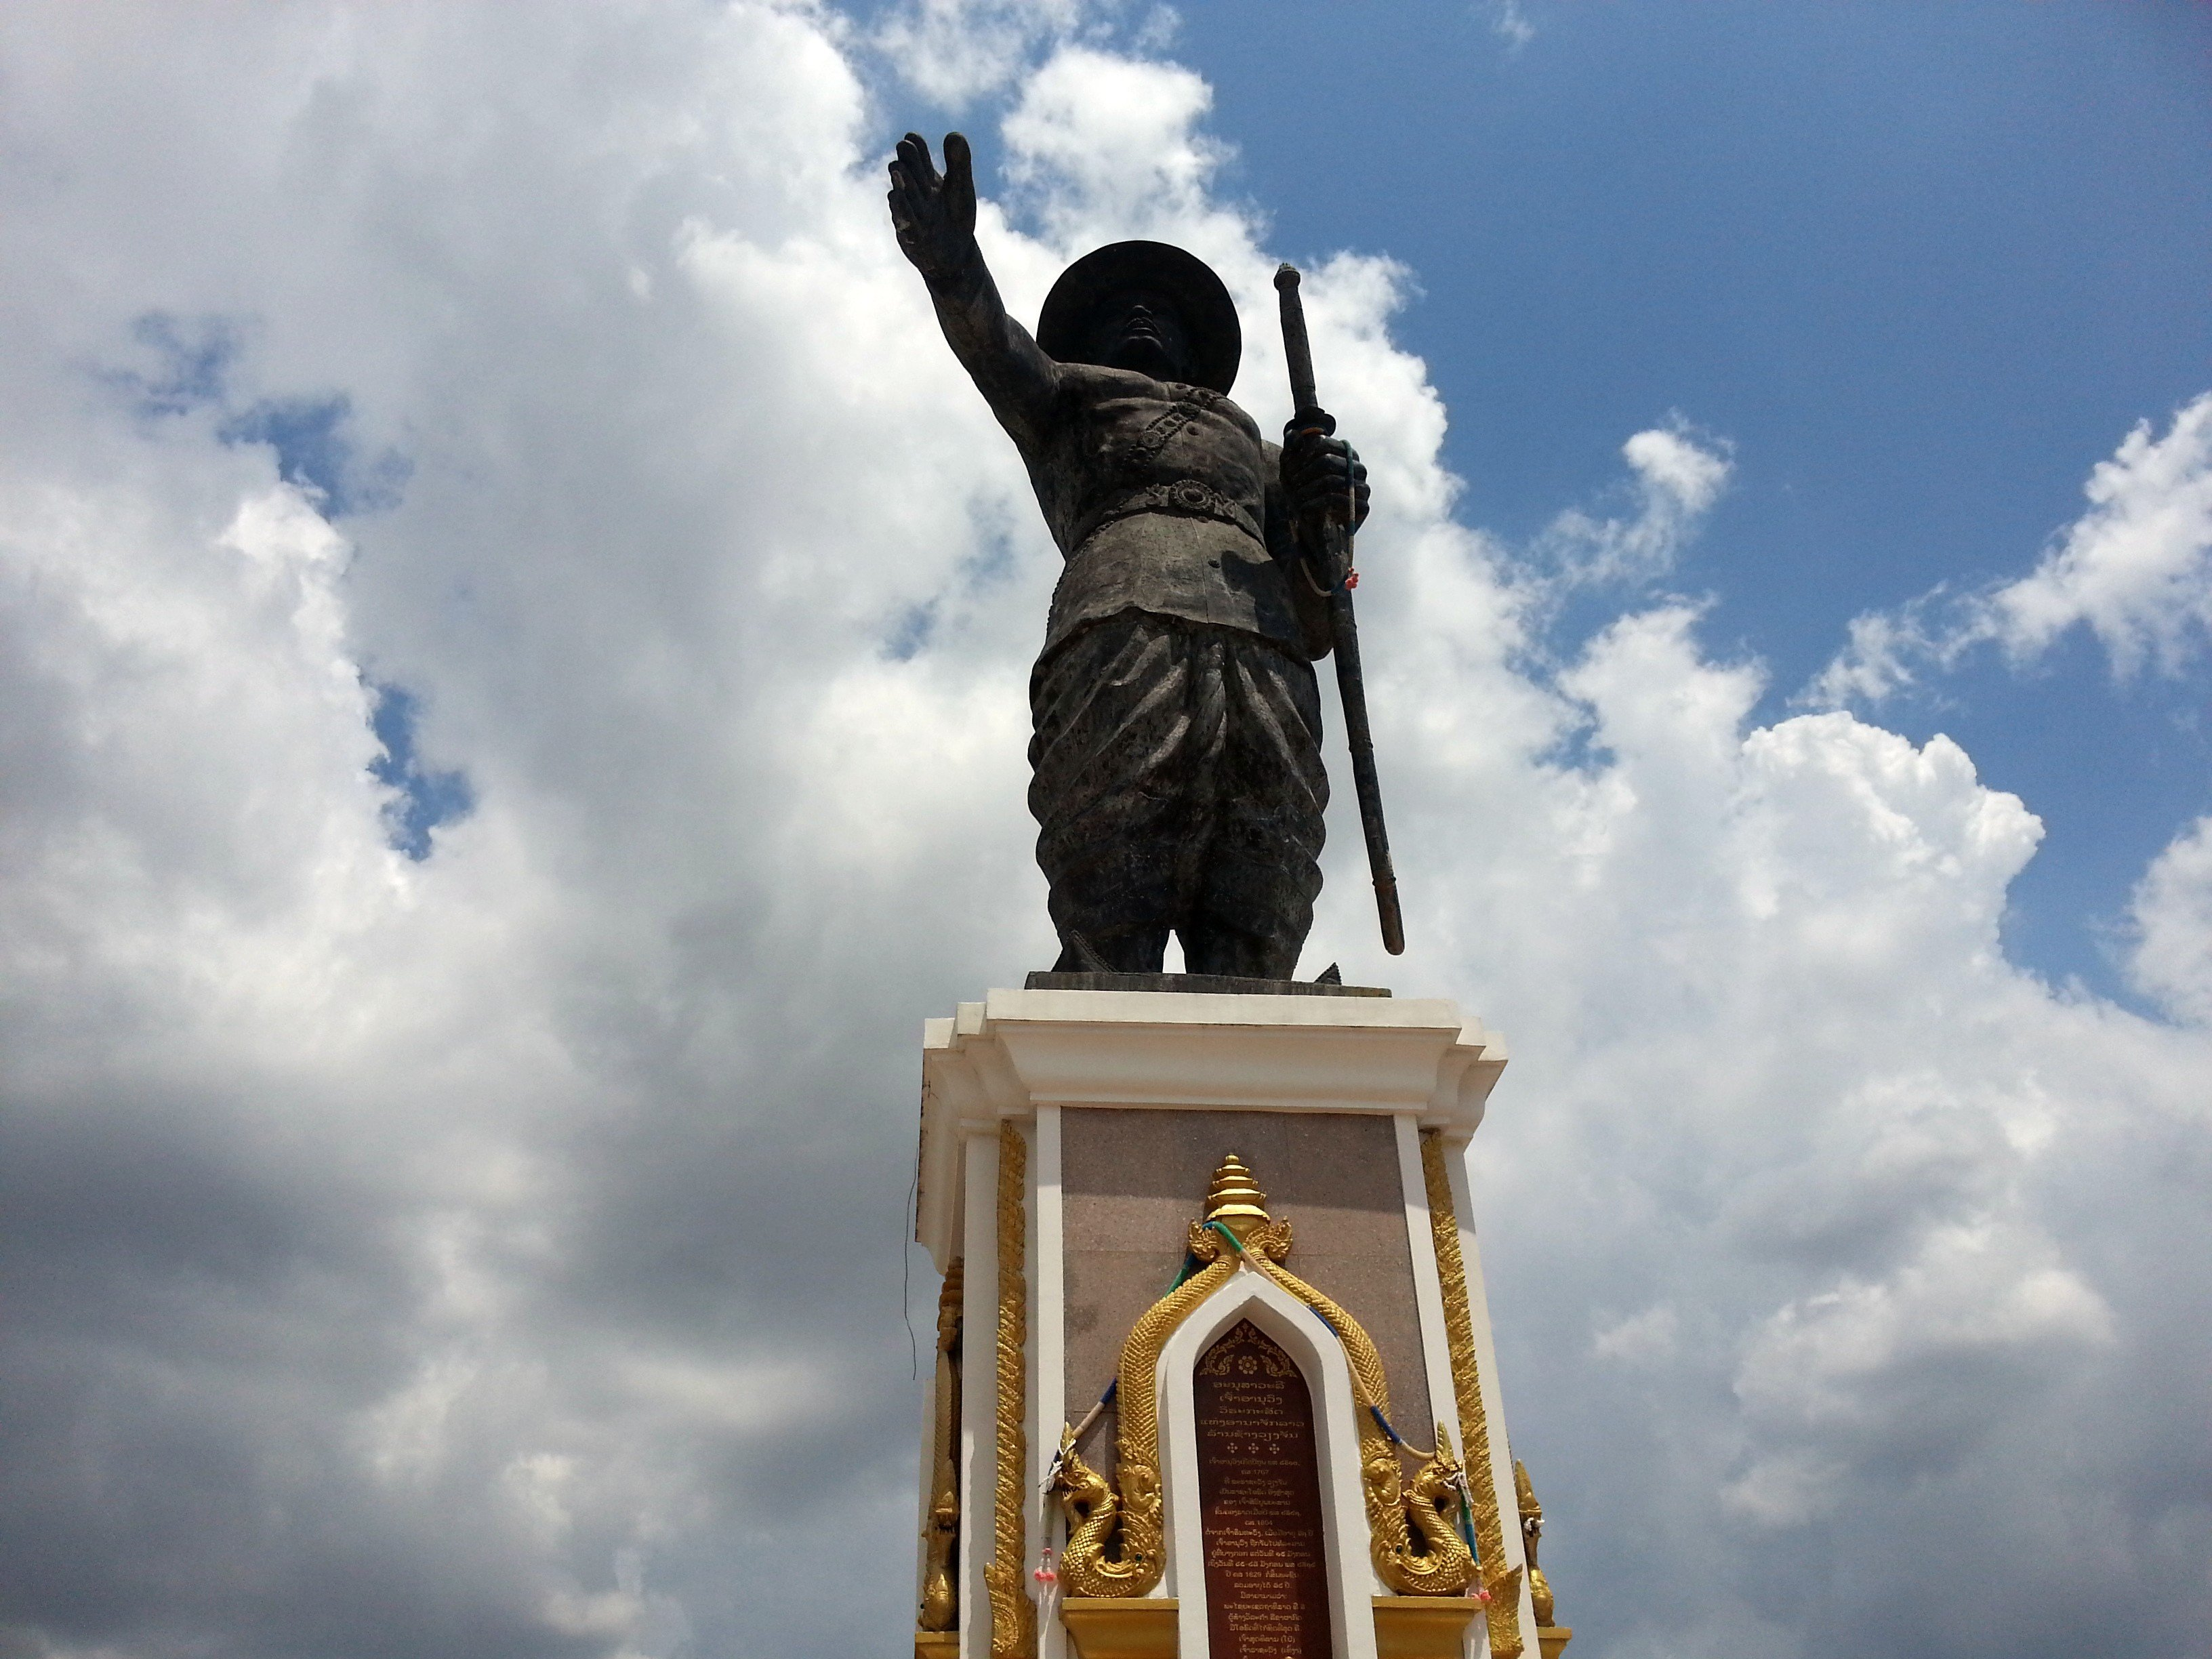 Chao Anouvong lead a rebellion against Siam